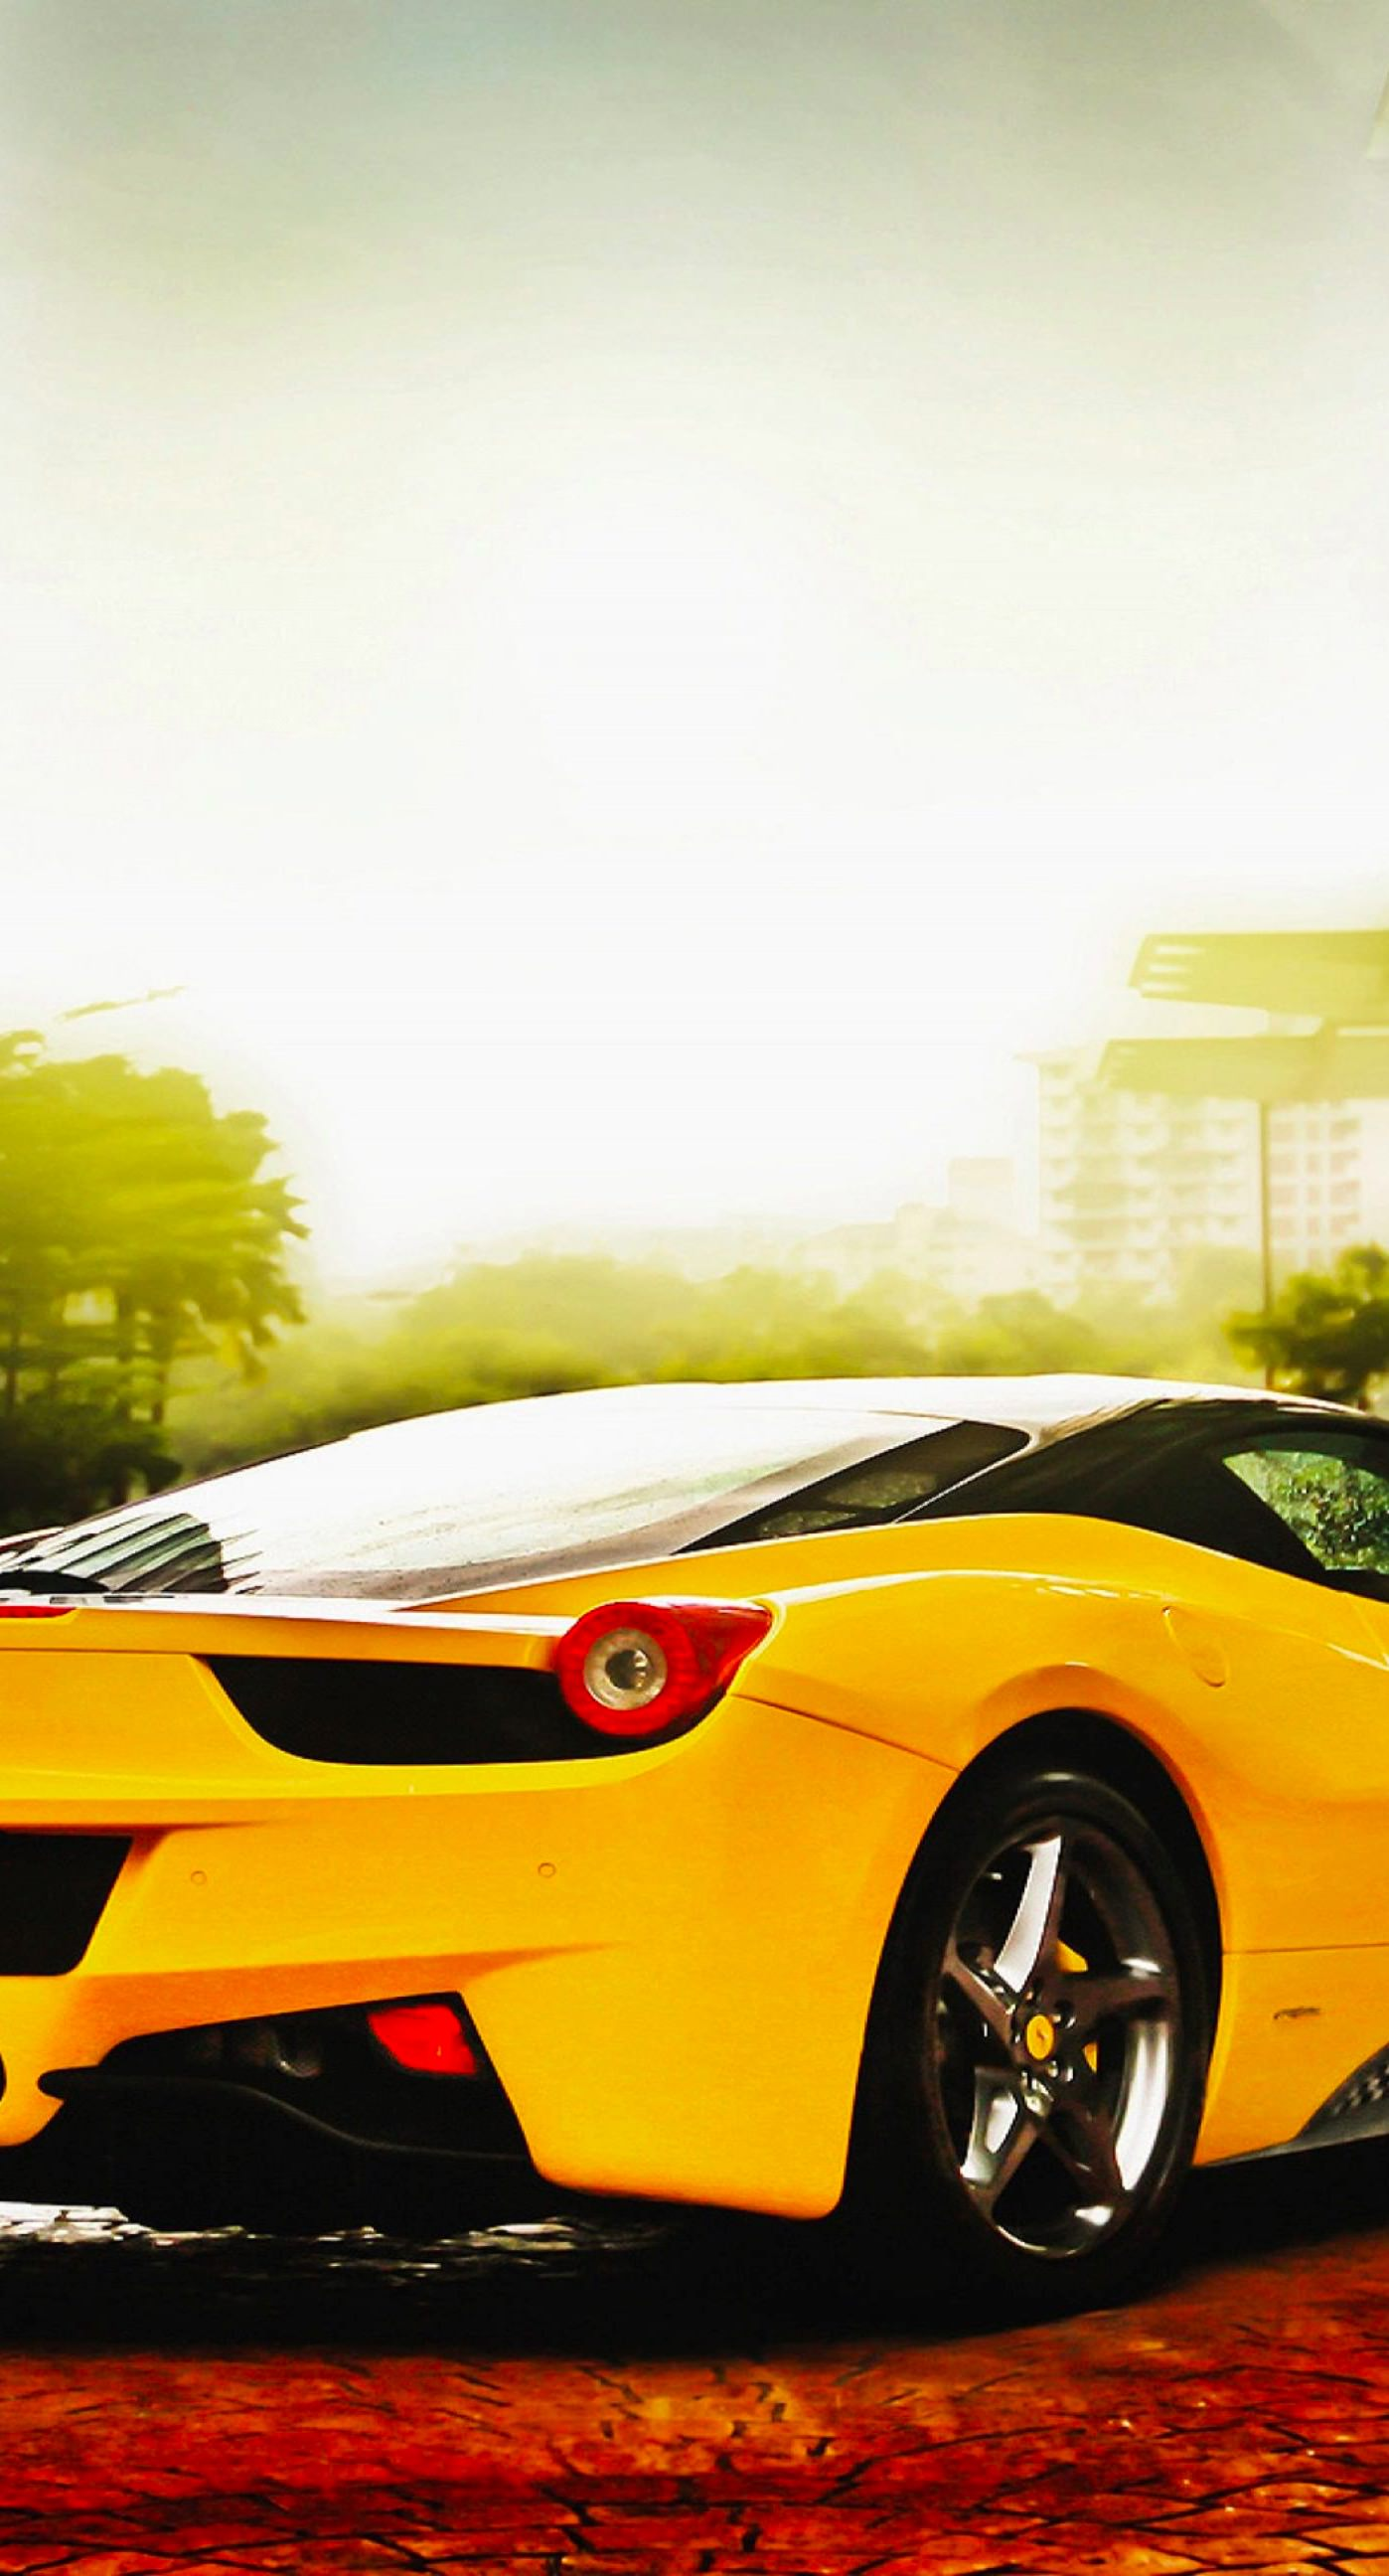 Cool Cars Yellow Wallpapersc IPhonePlus - Cool yellow cars